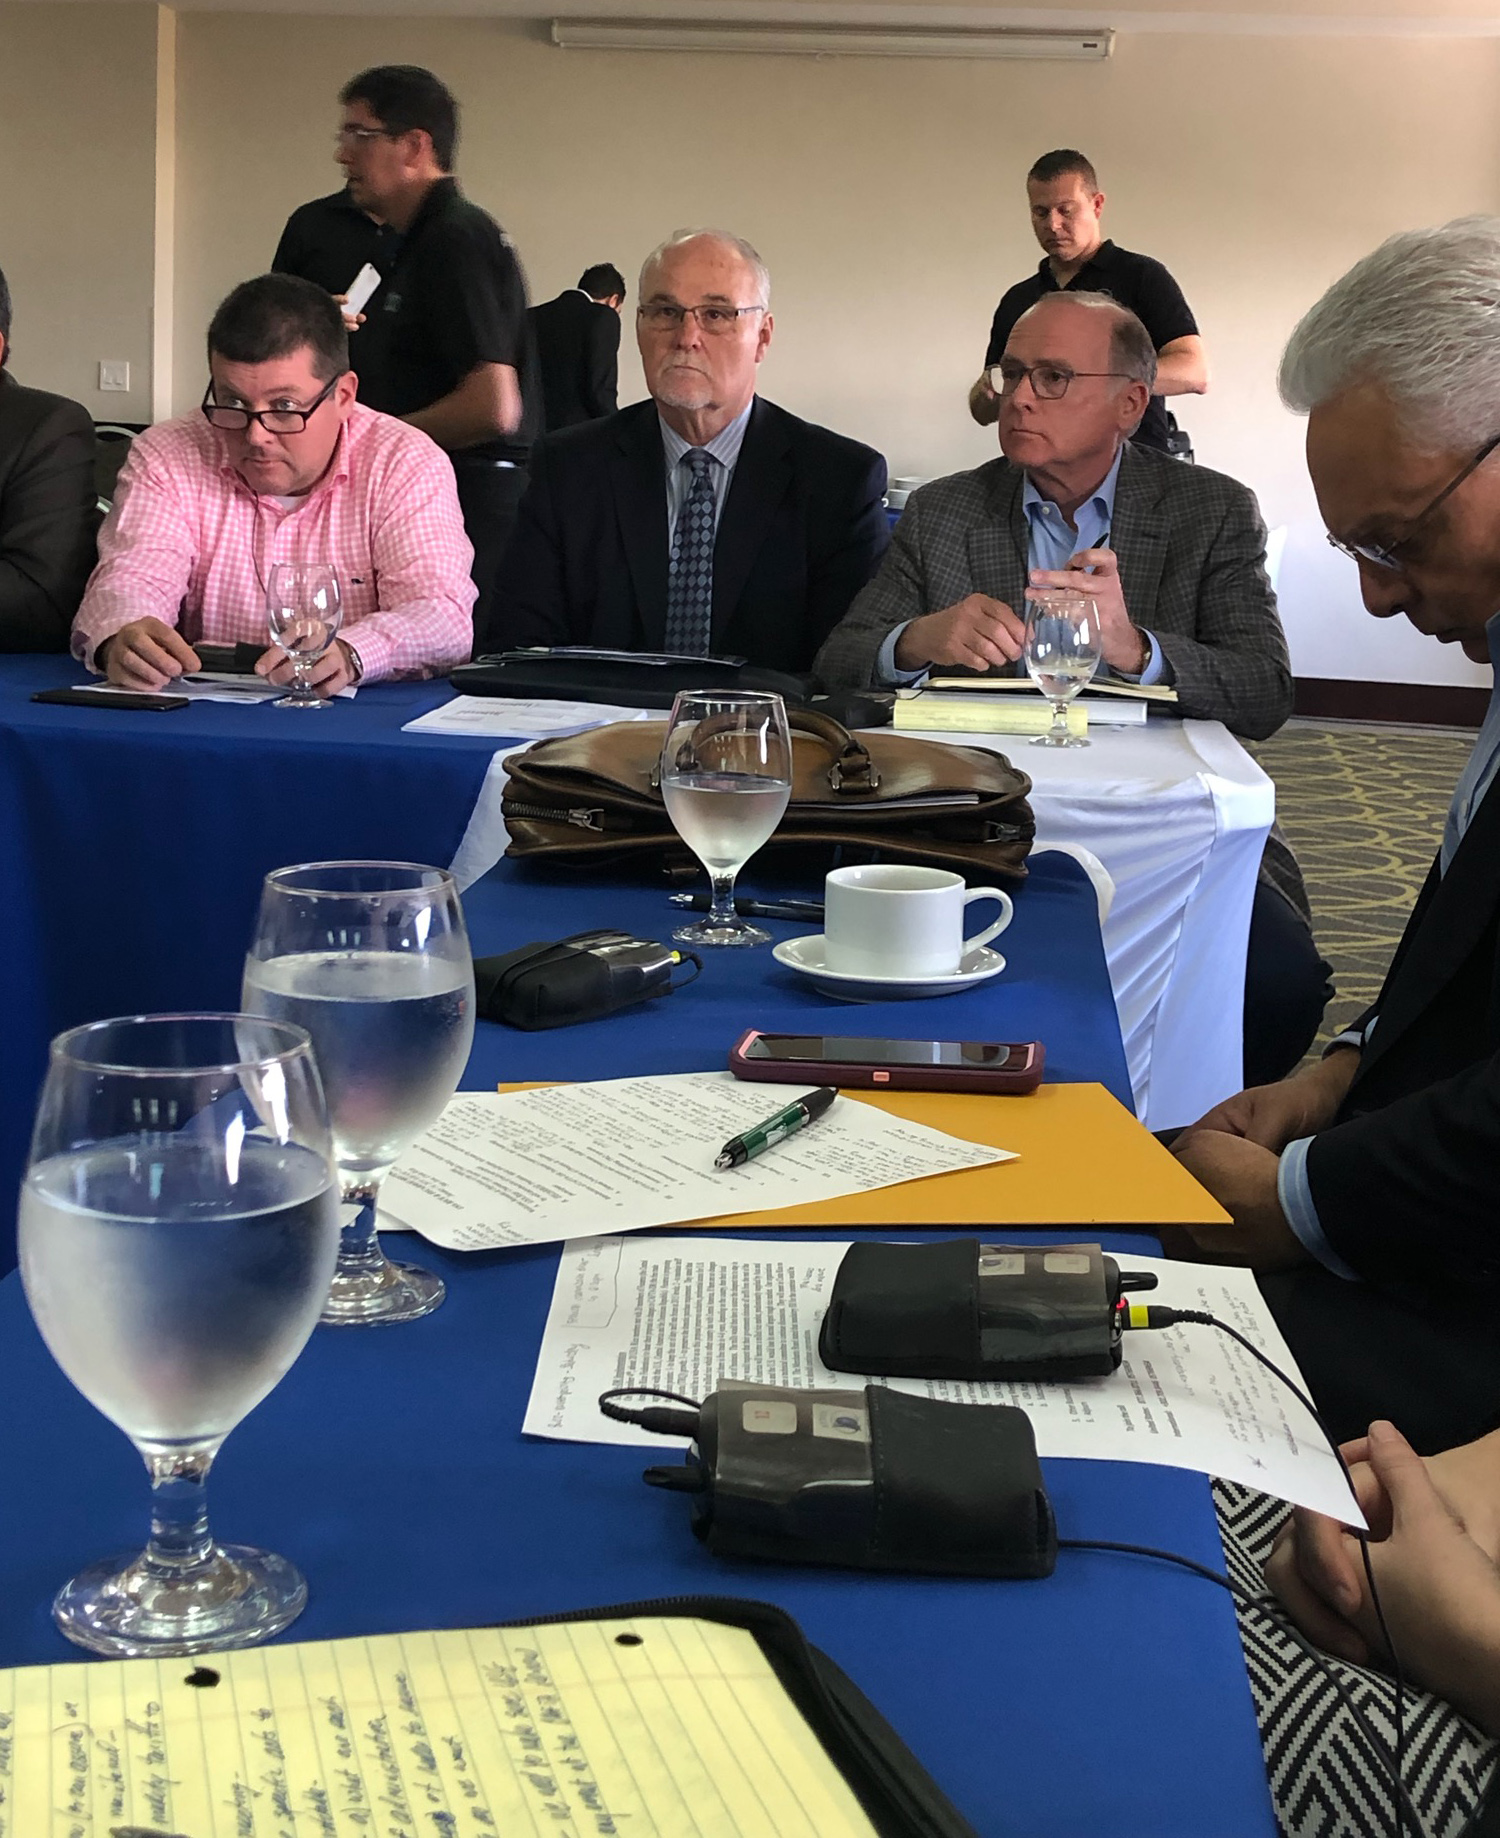 2019 Fecarroz mtg - people seated at table covered with blue tablecloth, glasses of water, paper, pens, and electronic devices